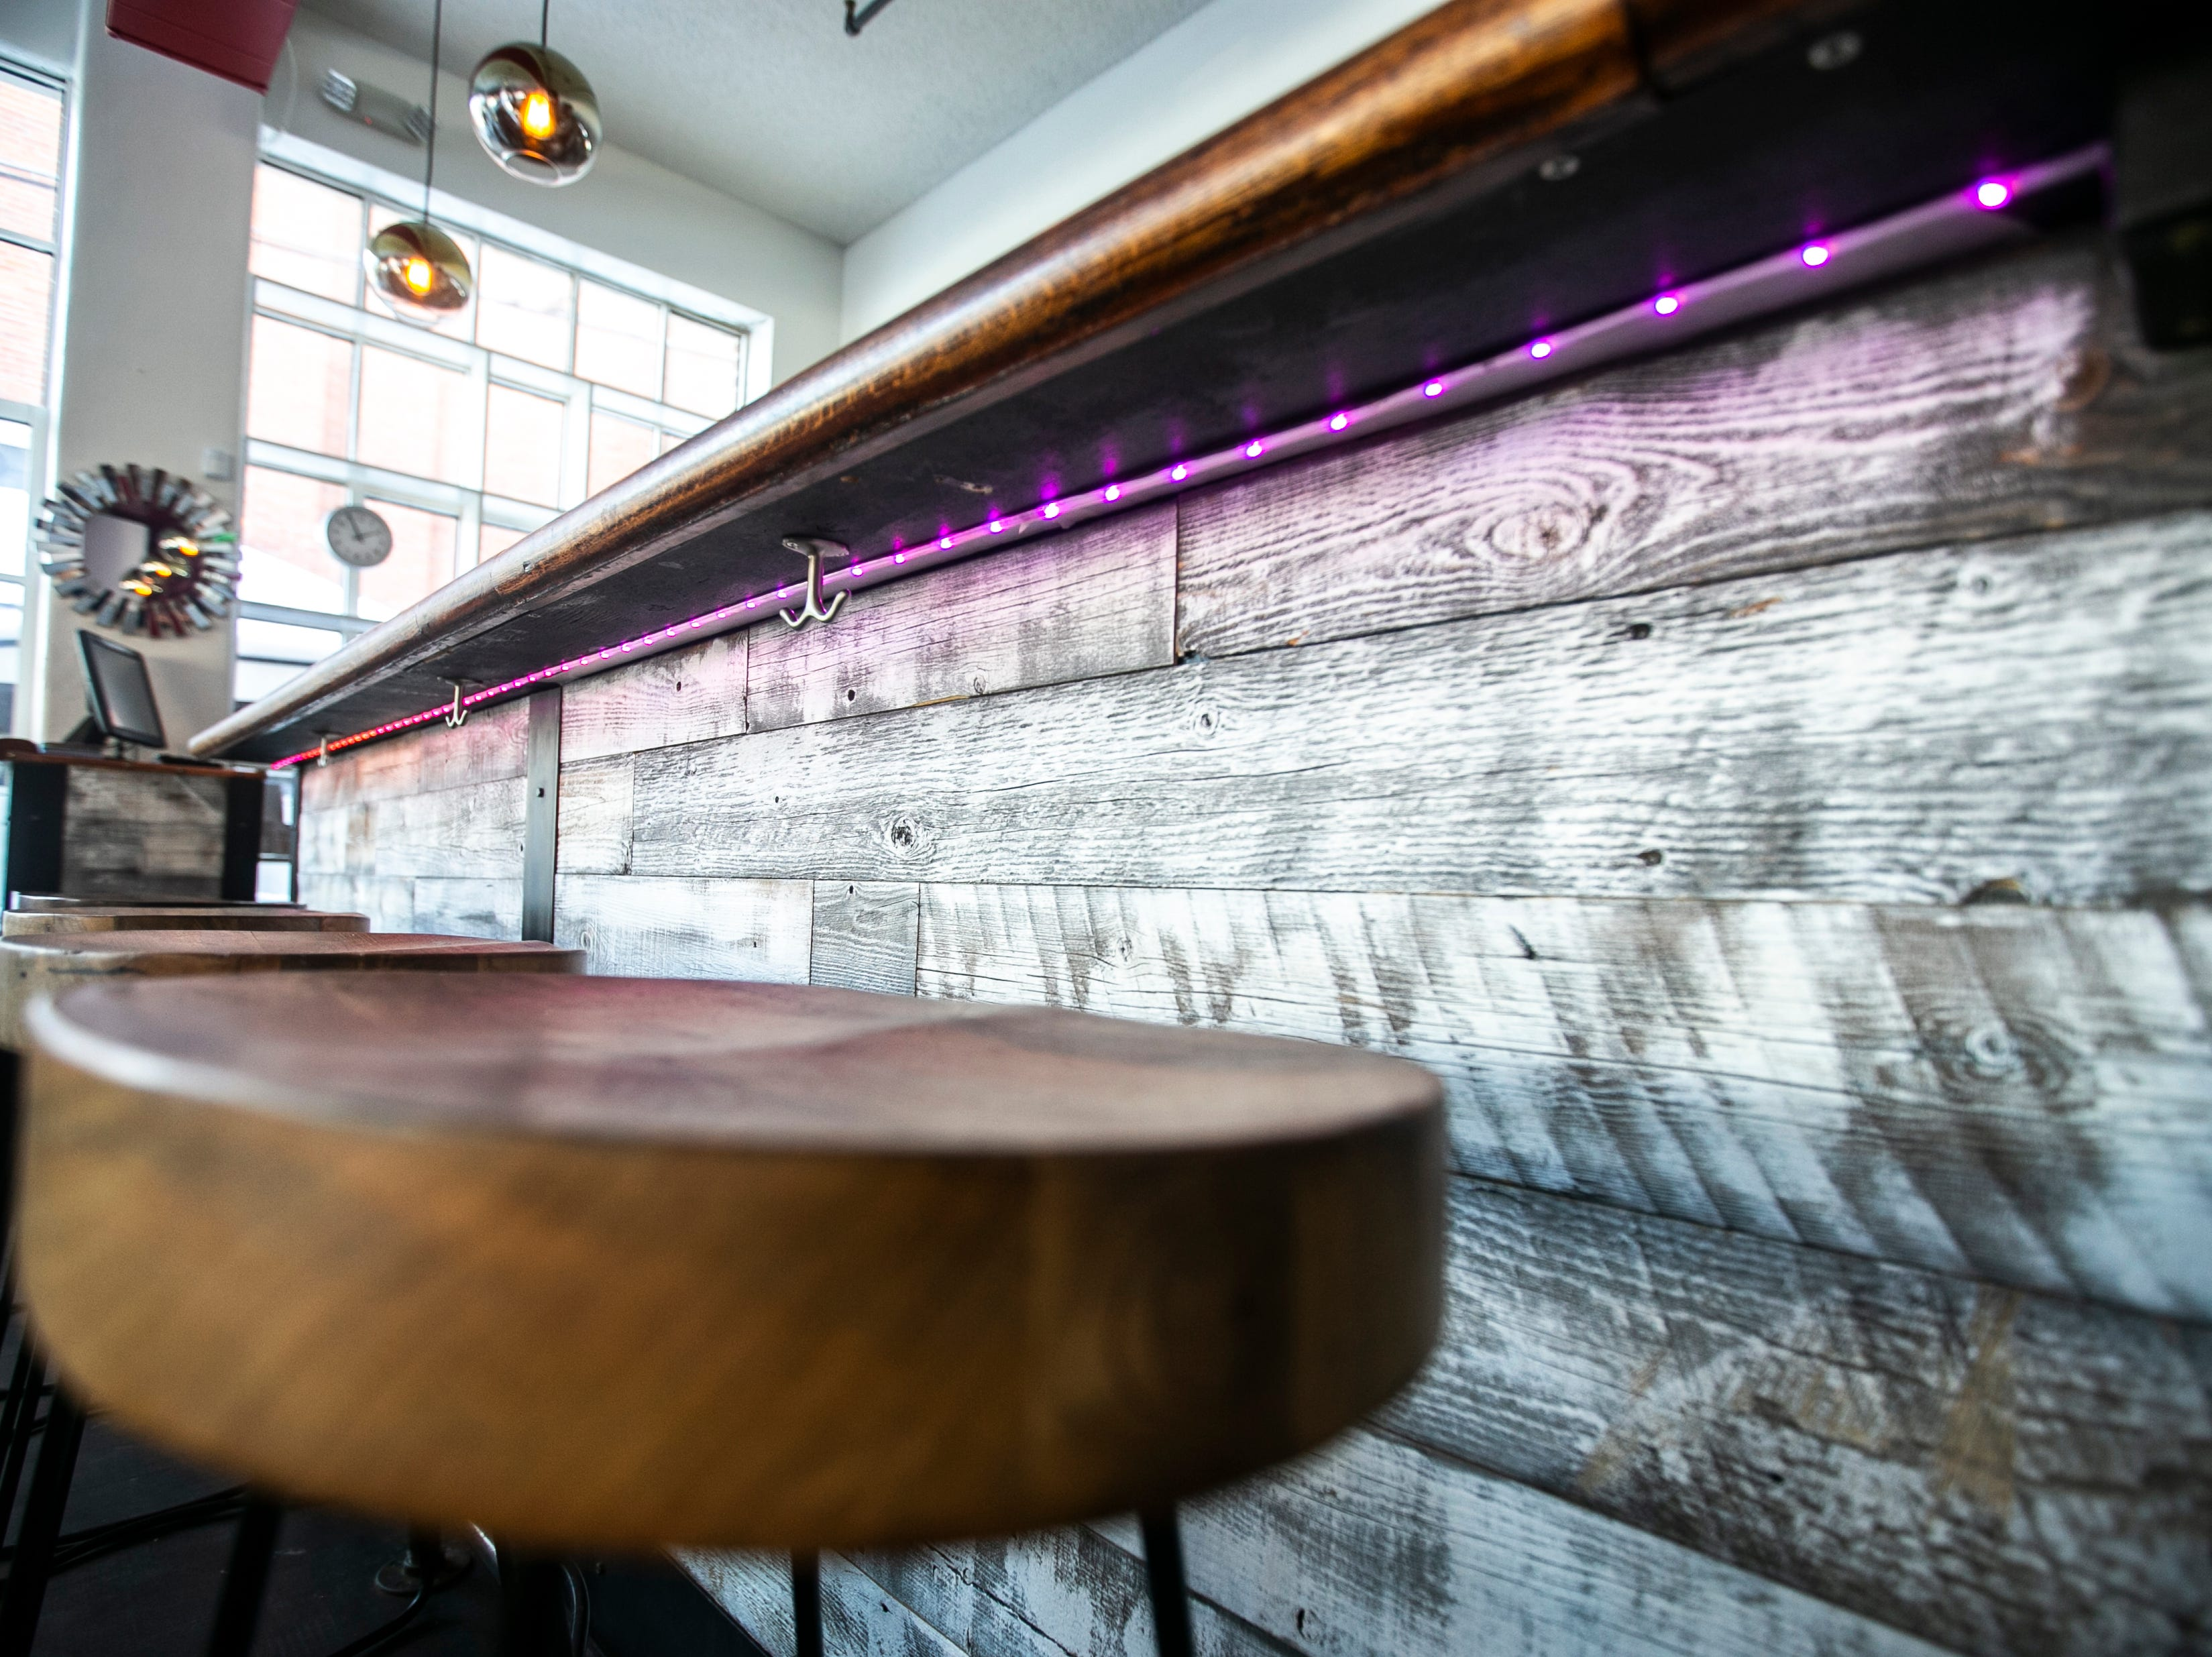 Bar stools are seen opposite an LED light strip running the length of the bar on Wednesday, Jan. 23, 2019, at Linn Street Dive in Iowa City, Iowa.